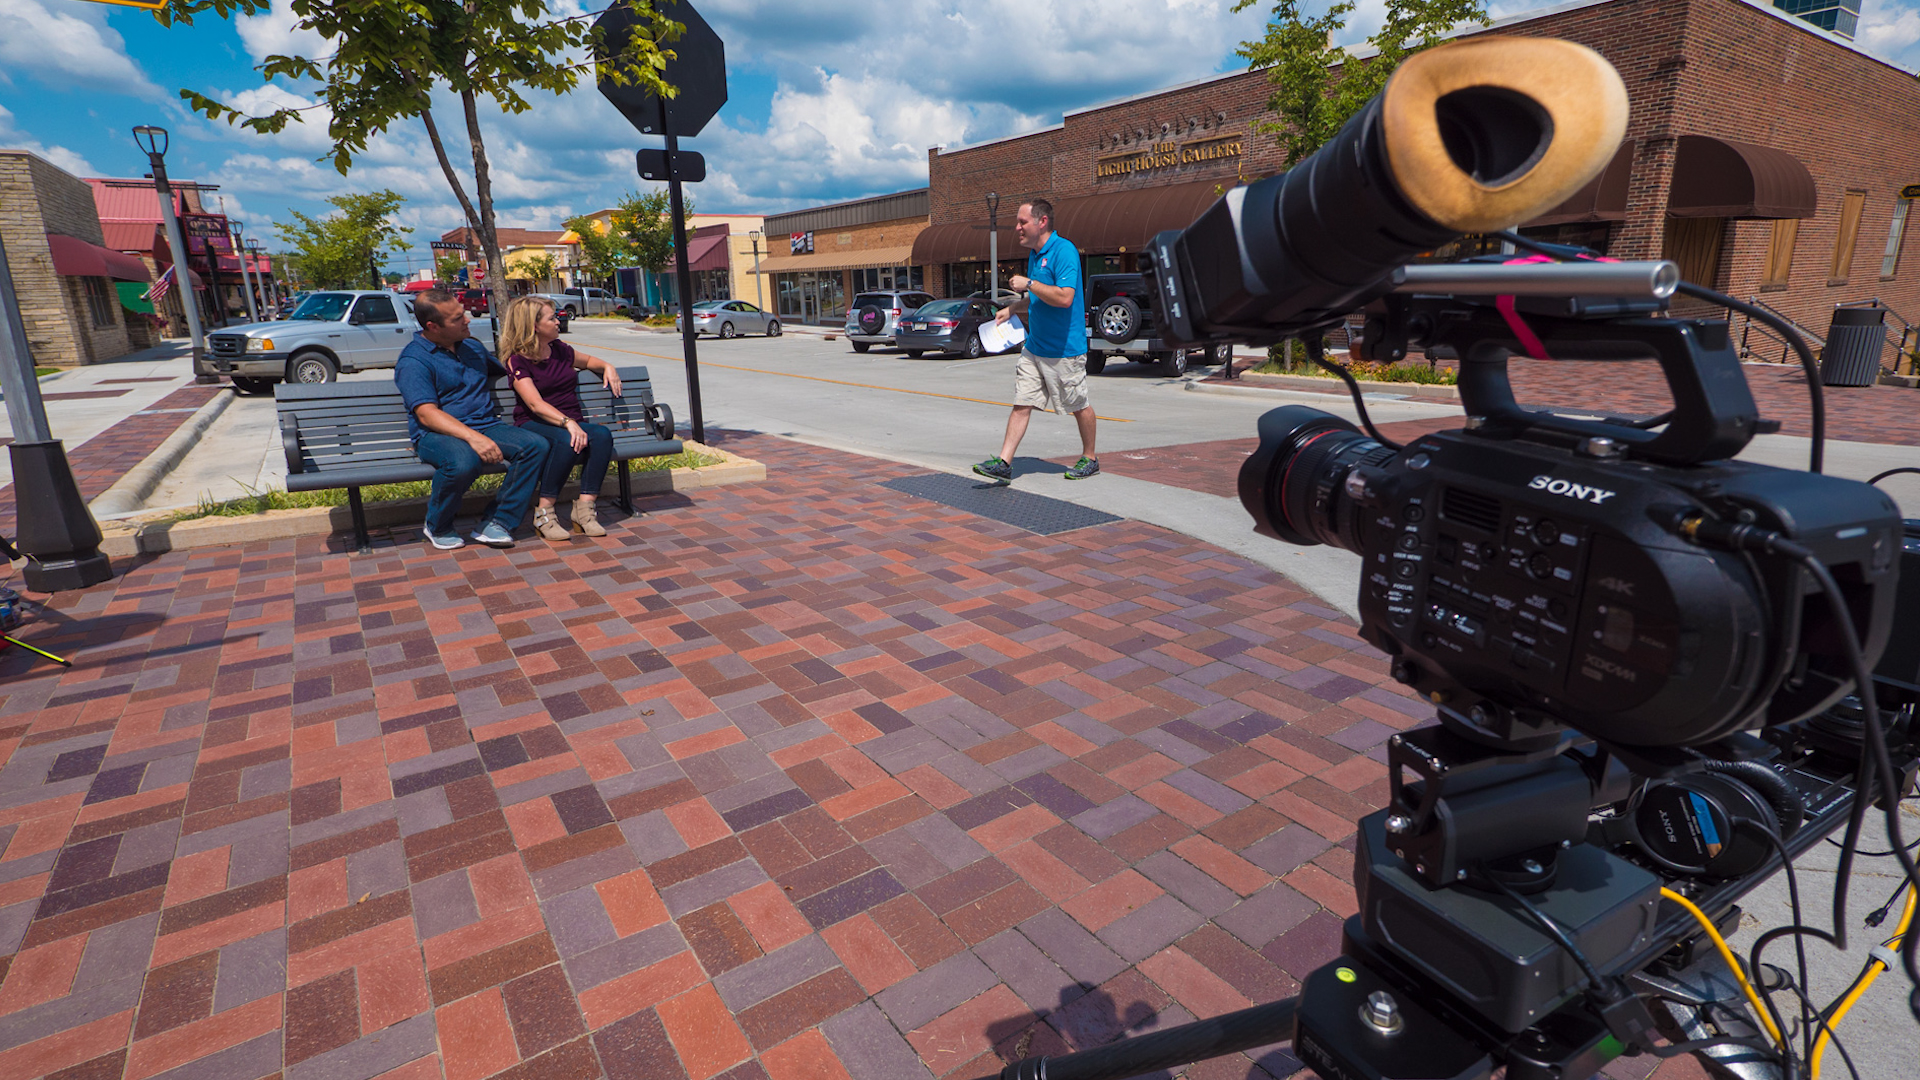 Should I hire a video production company, or create my own video in-house?